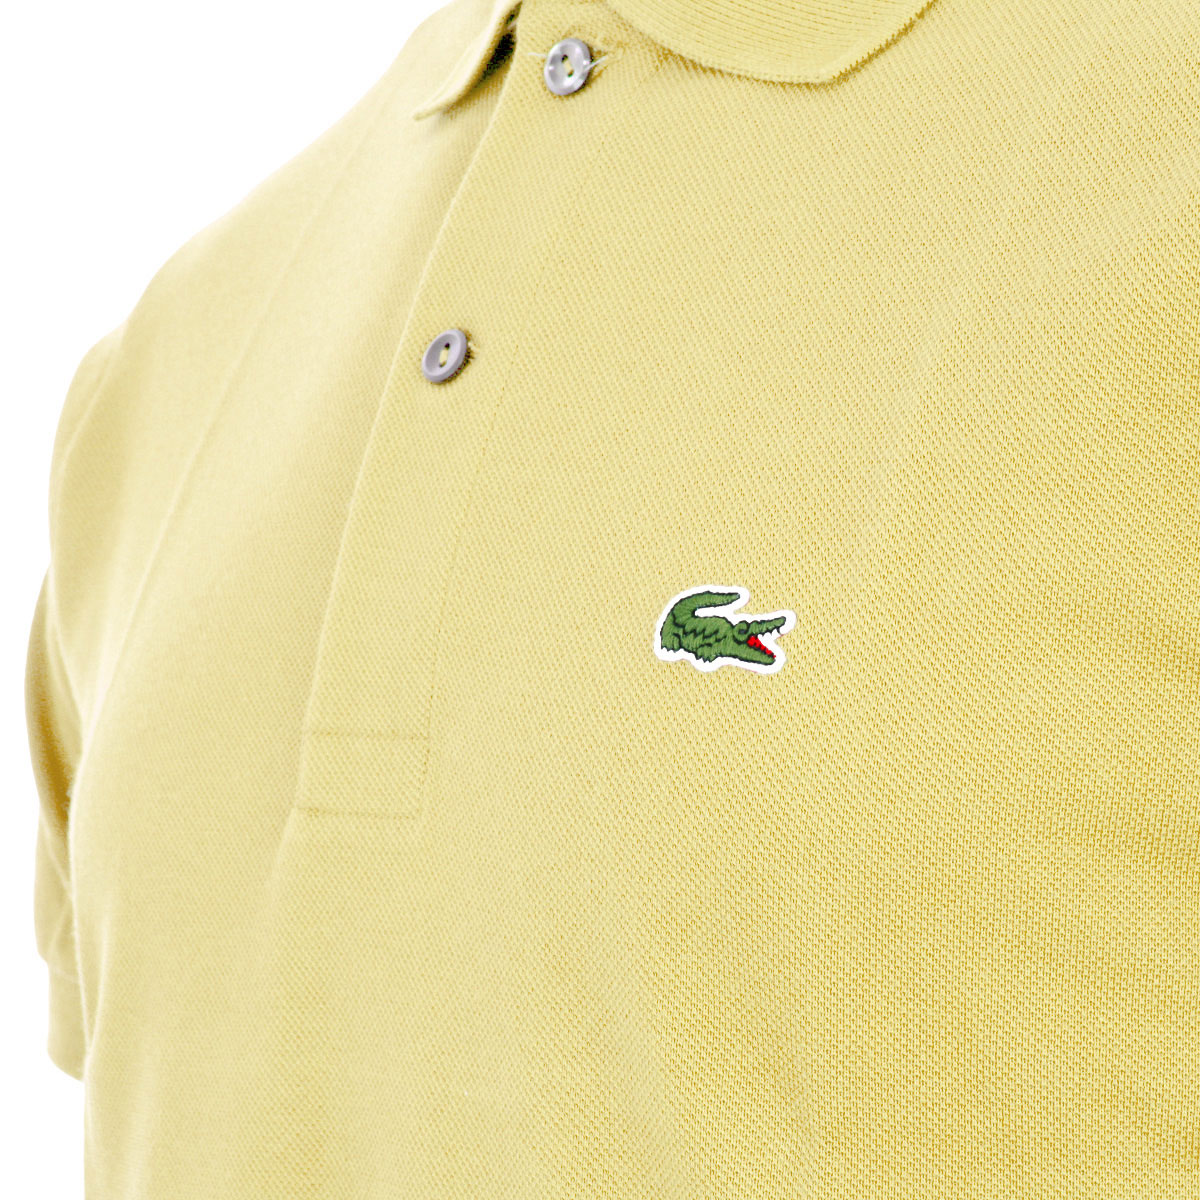 Lacoste-Mens-Classic-Cotton-L1212-Short-Sleeve-Polo-Shirt-26-OFF-RRP thumbnail 43